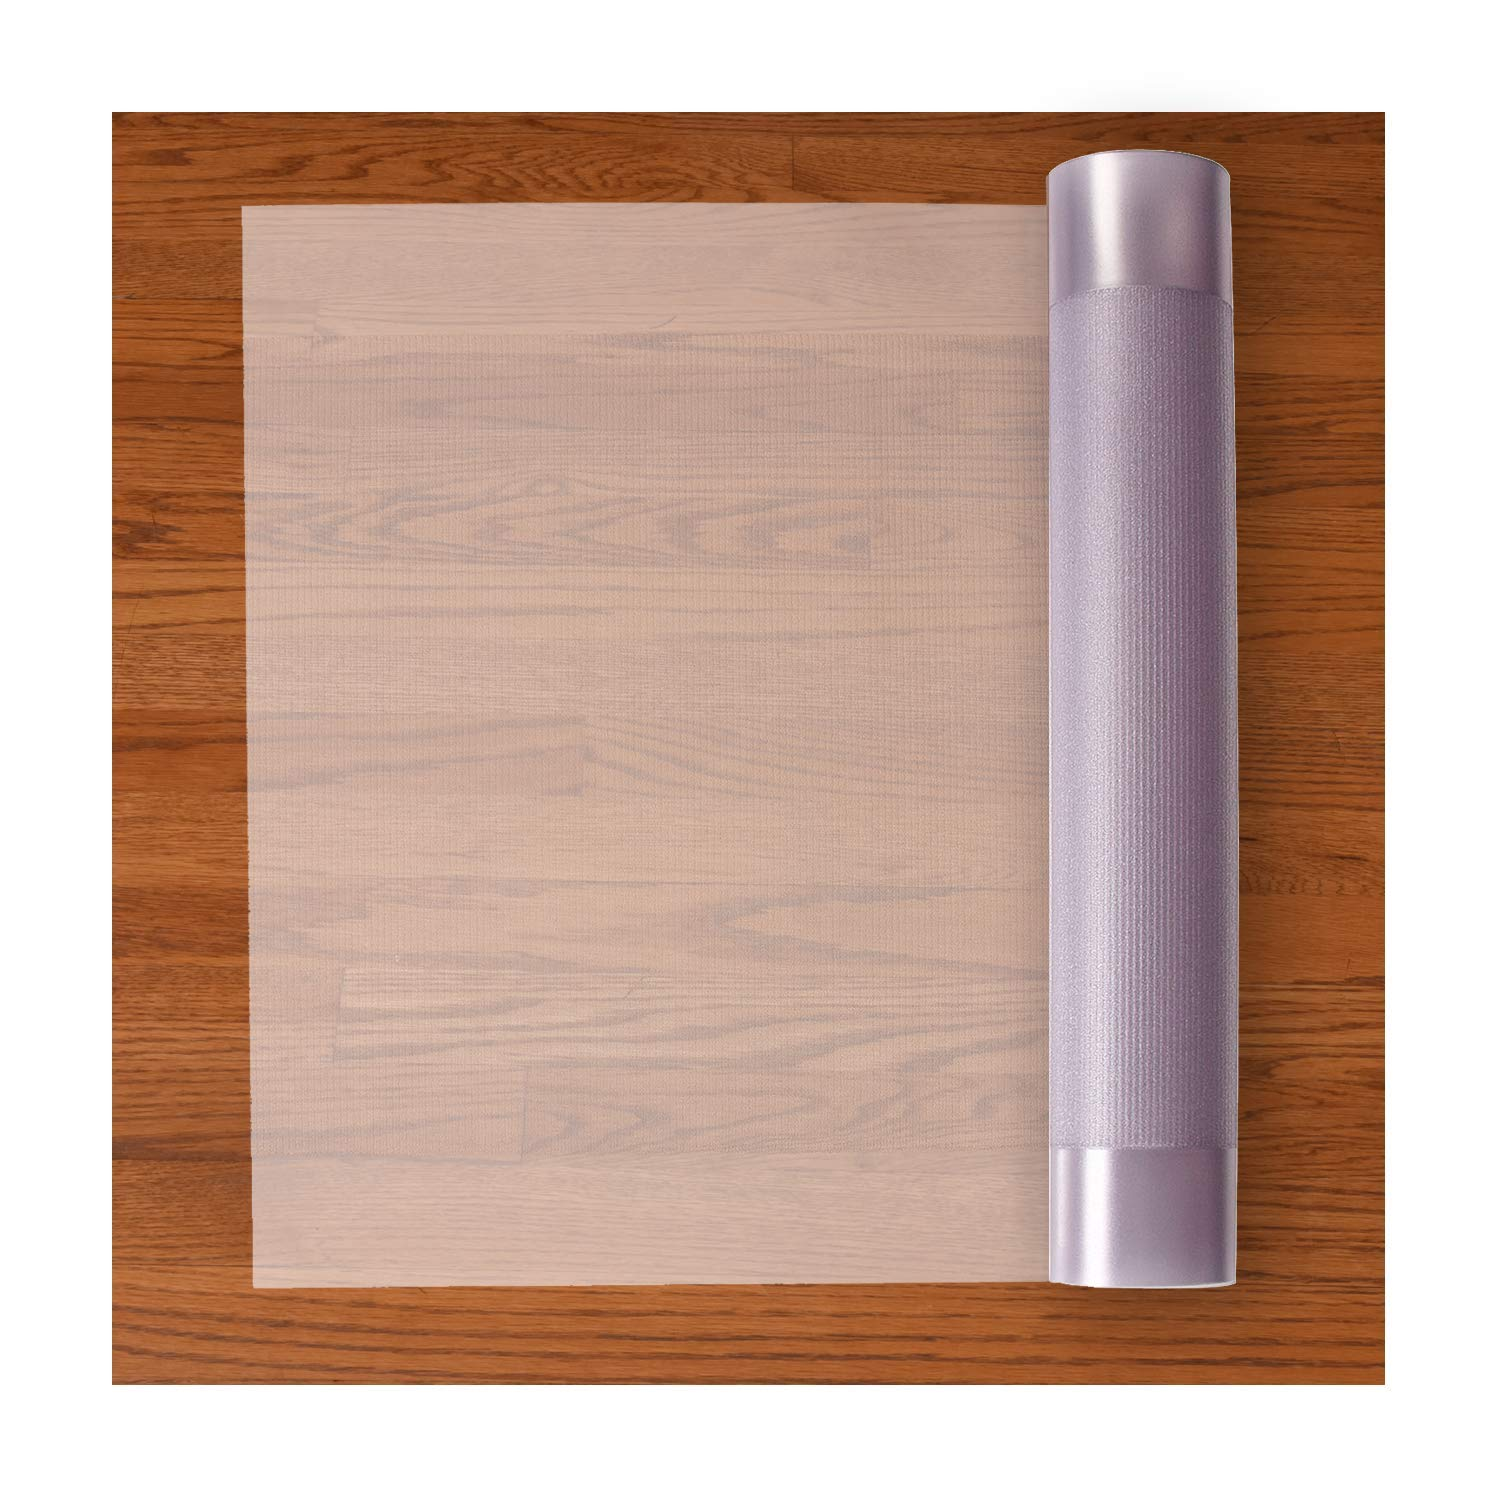 Resilia Premium Heavy Duty Floor Runner/Protector for Hardwood Floors - Non-Skid, Clear, Plastic Vinyl, 27 Inches x 12 Feet by Resilia